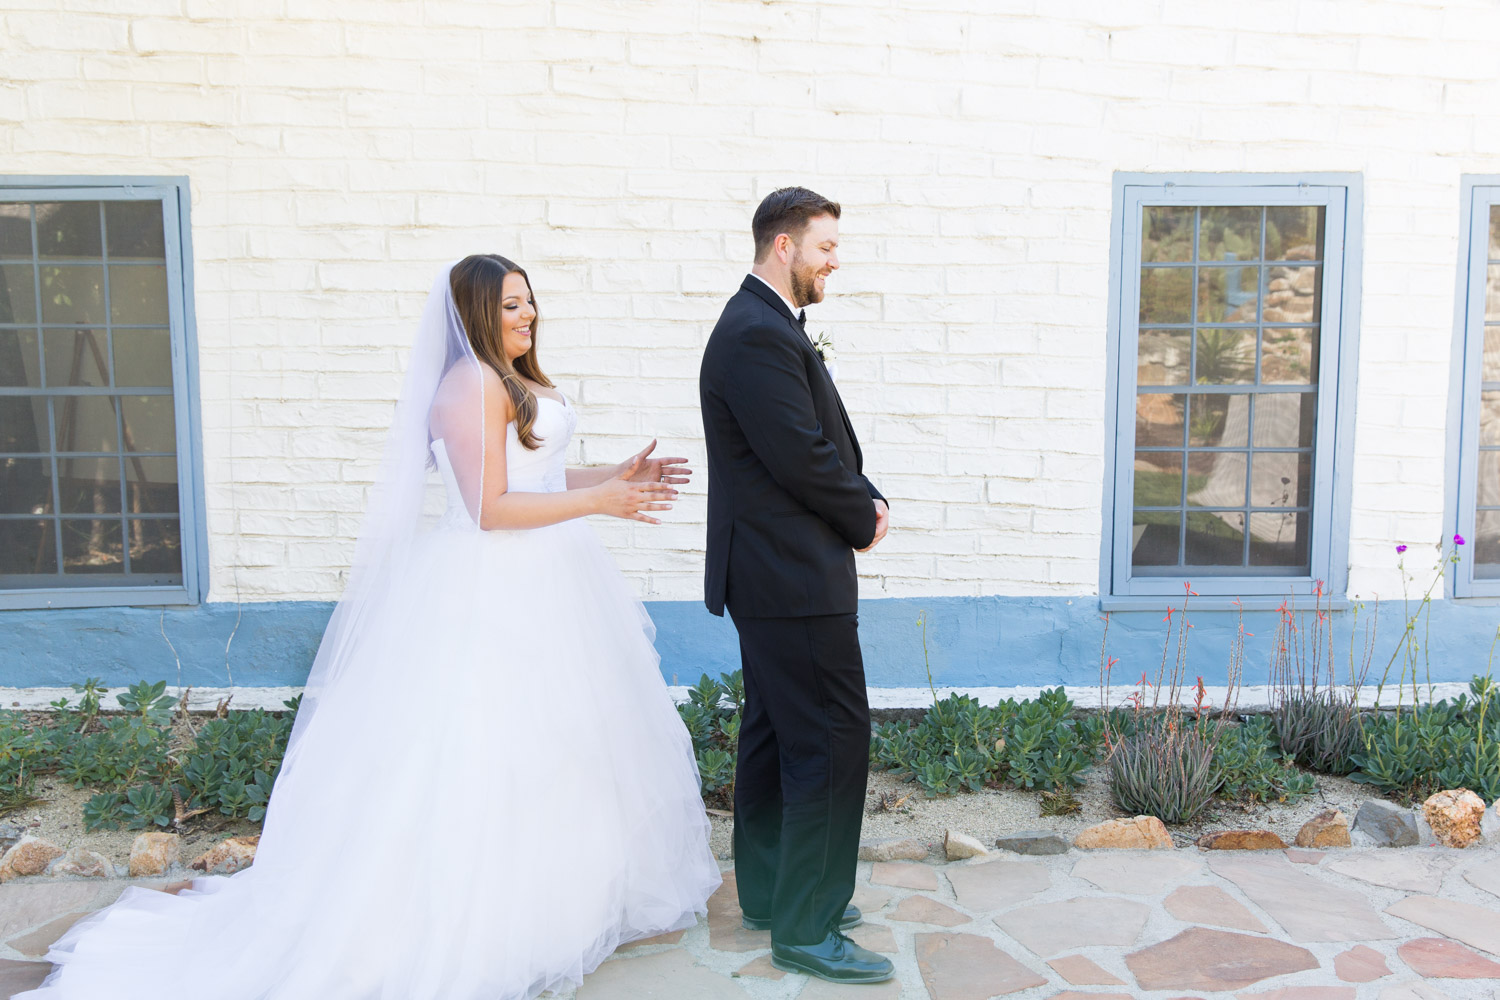 Wedding first look before the ceremony at Leo Carrillo Ranch